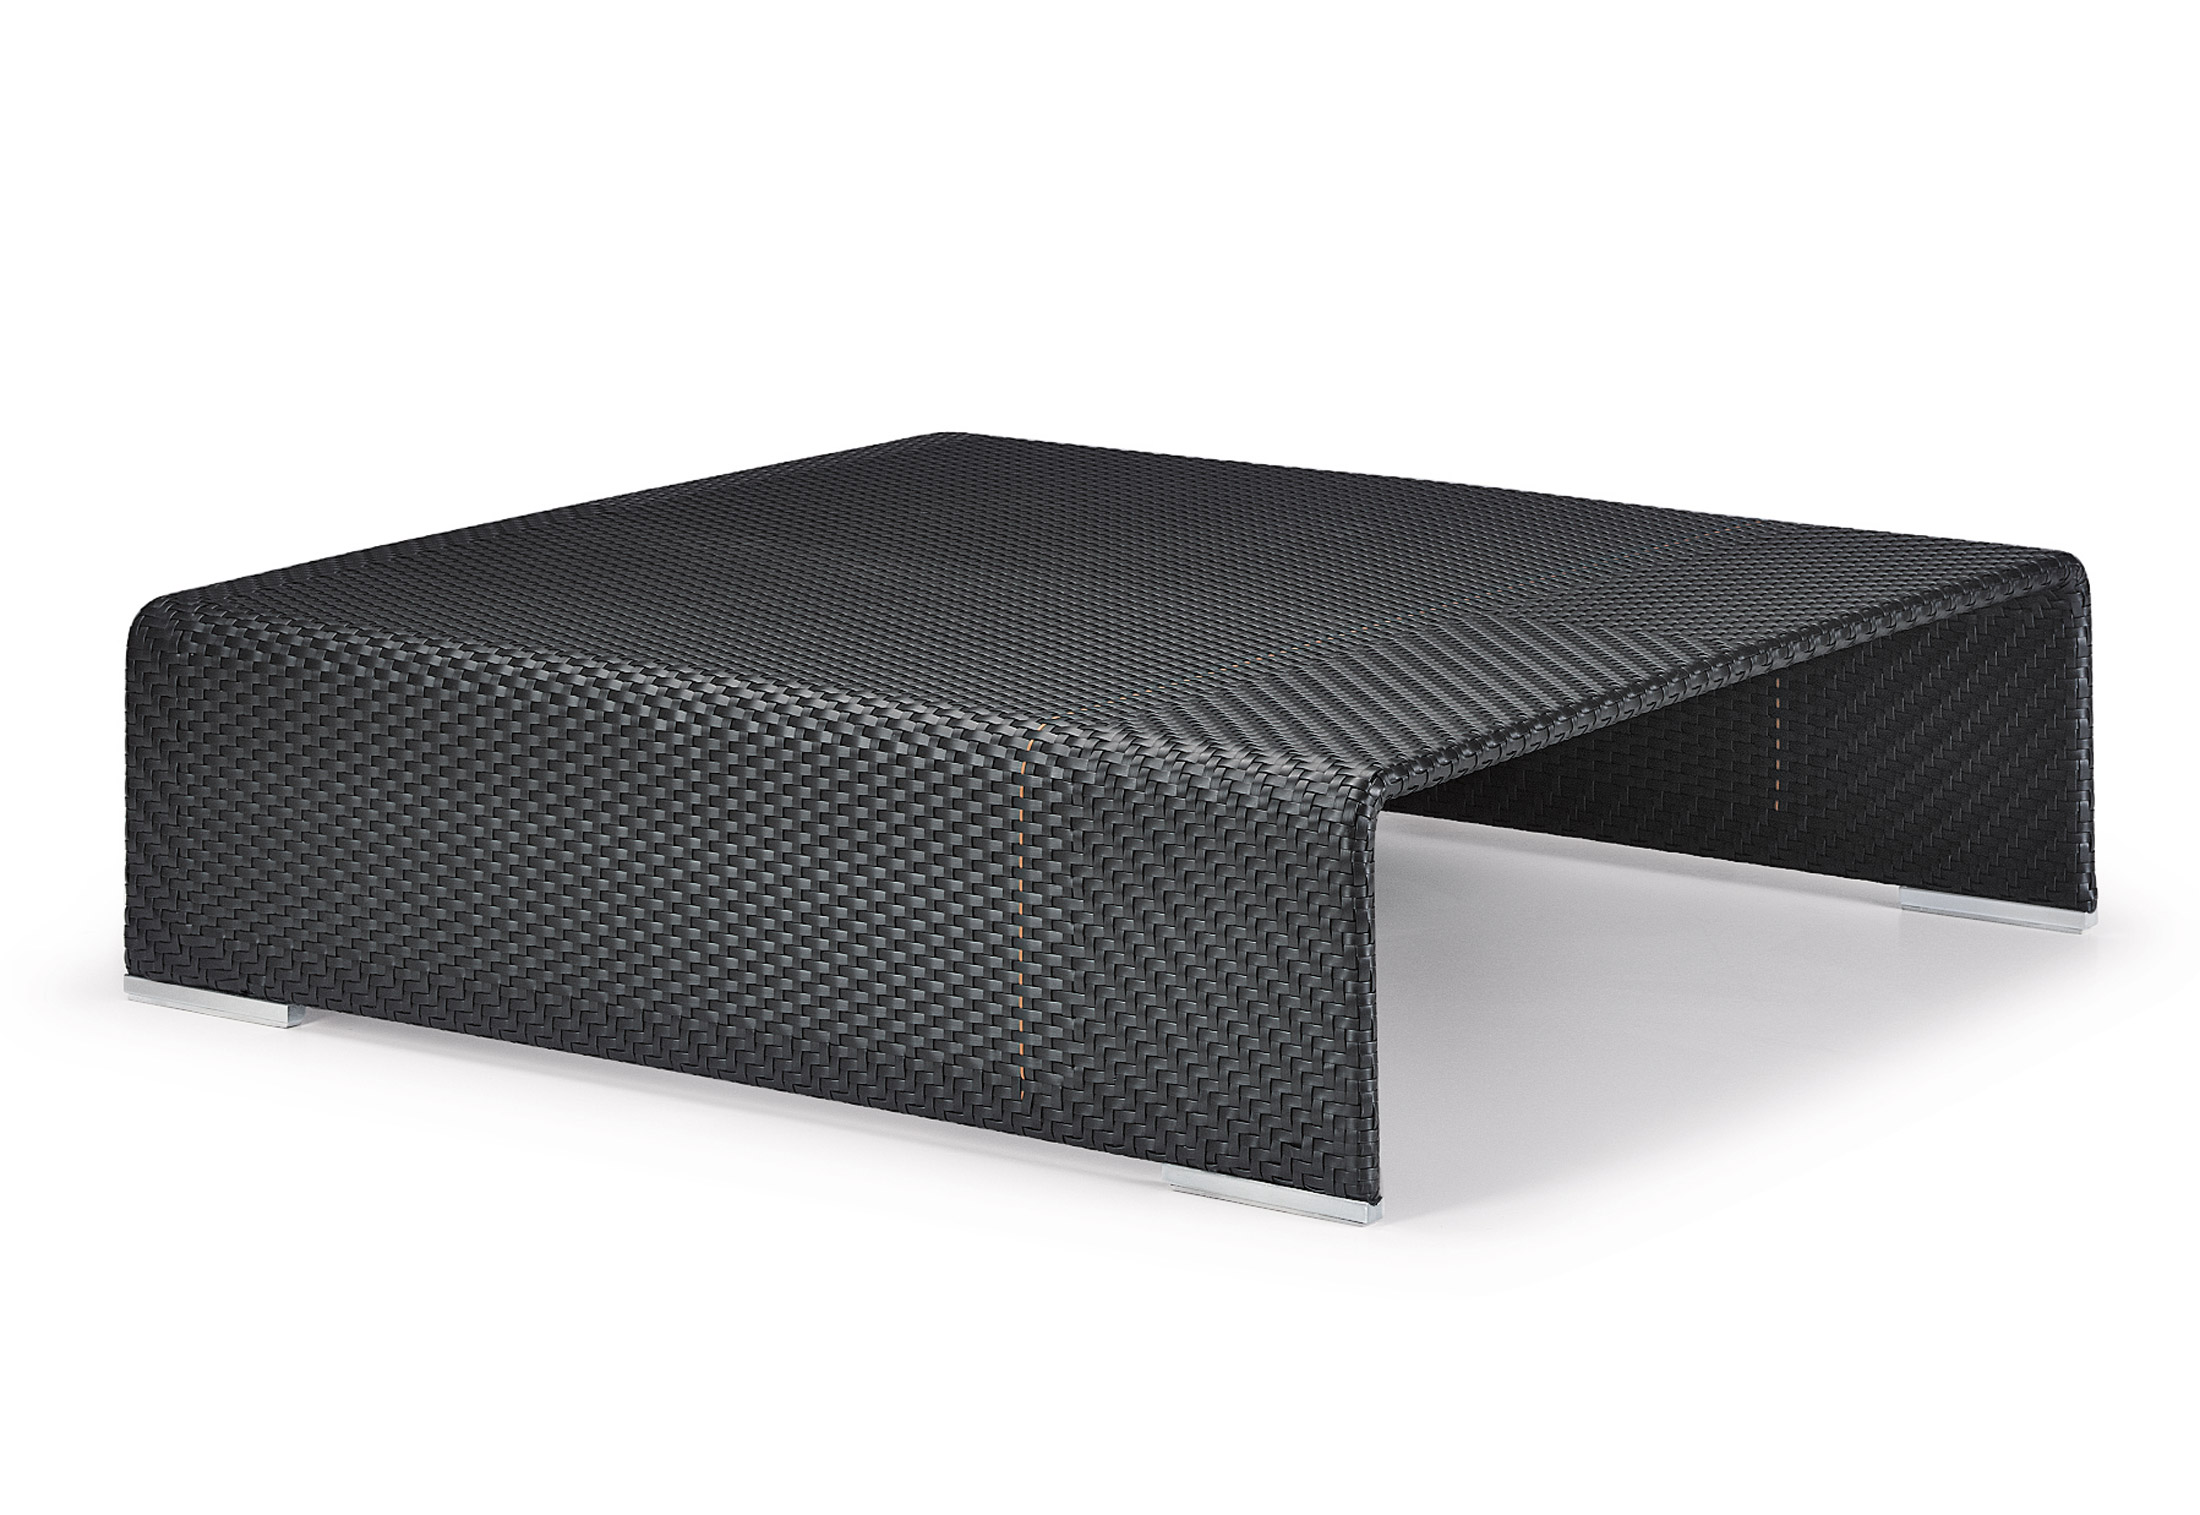 SLIM LINE coffee table by DEDON